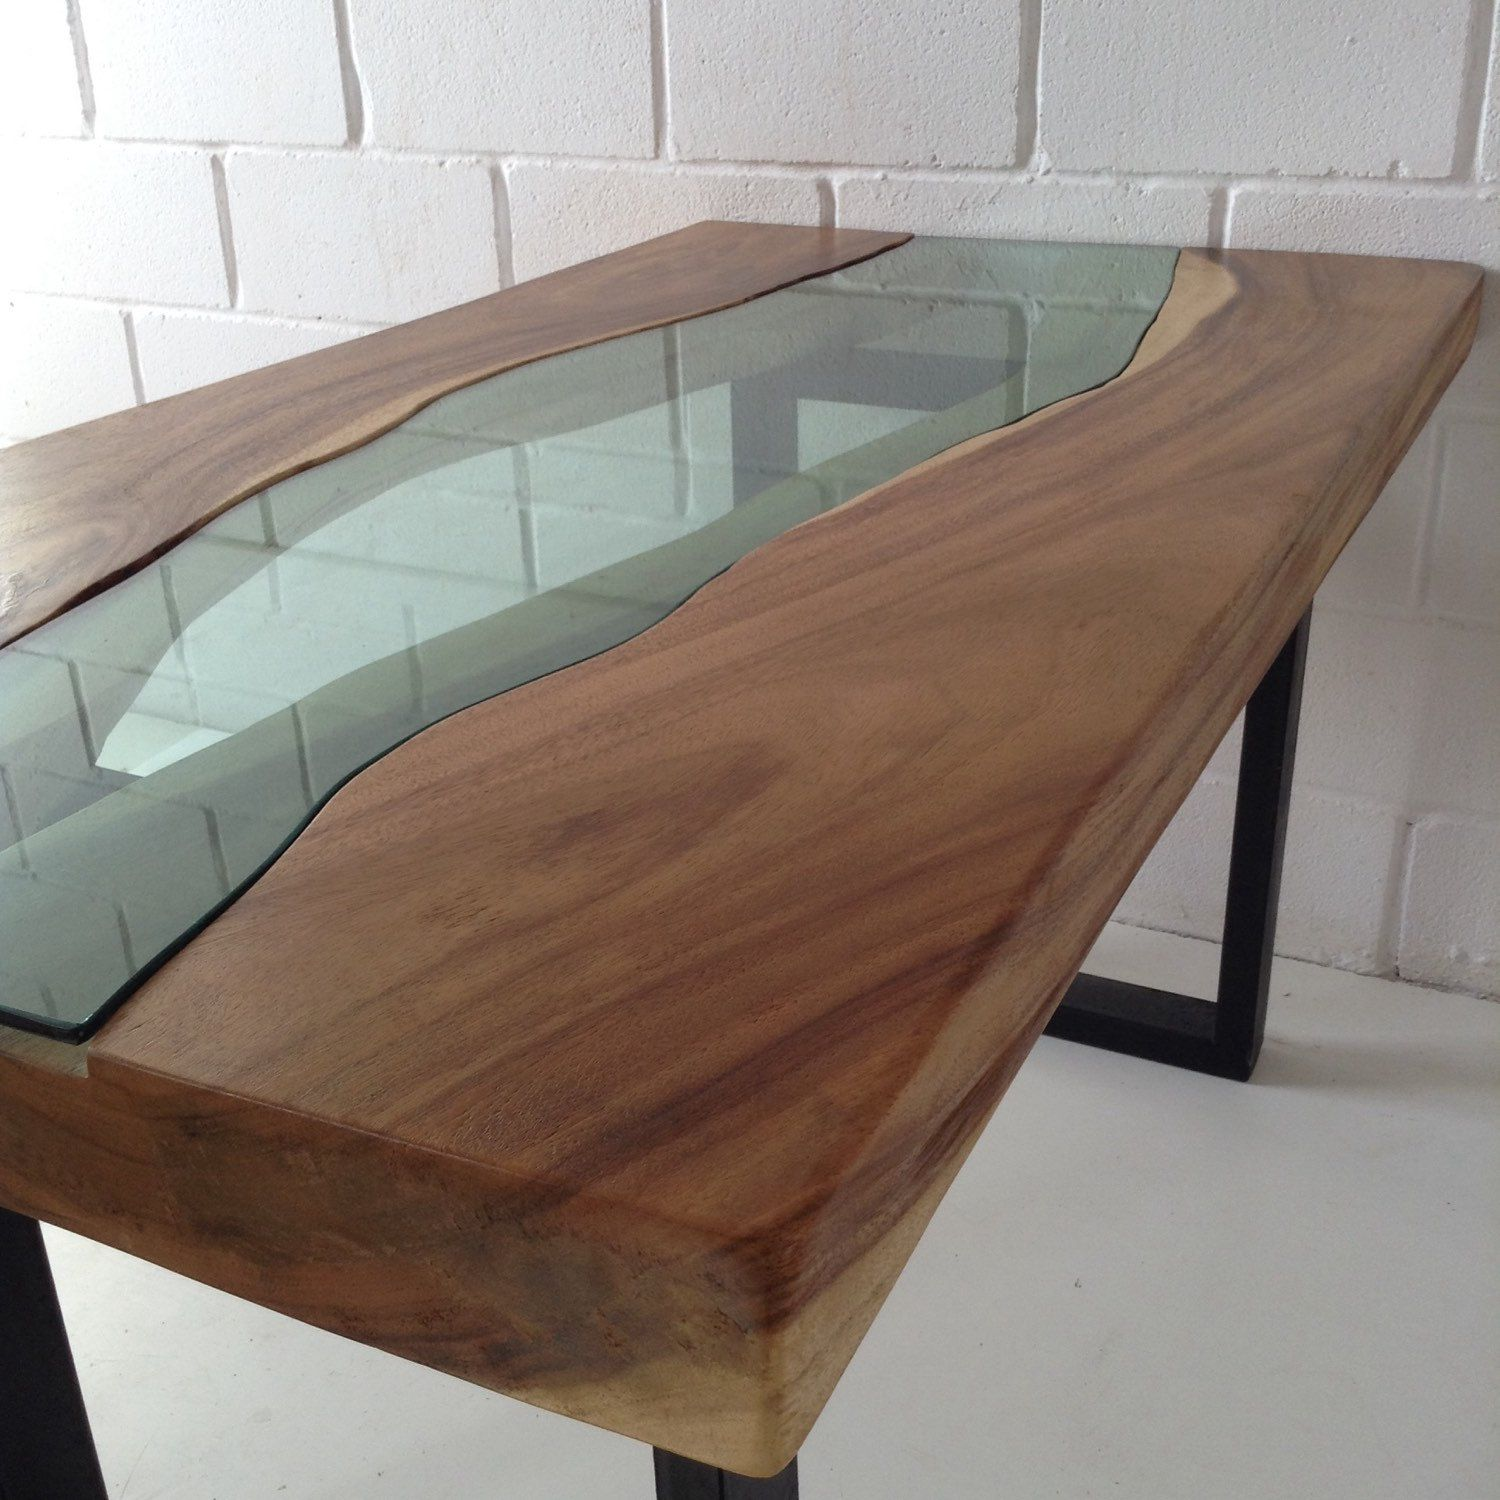 Live edge acacia wood dining table with glass river centre for Glass and wood dining table